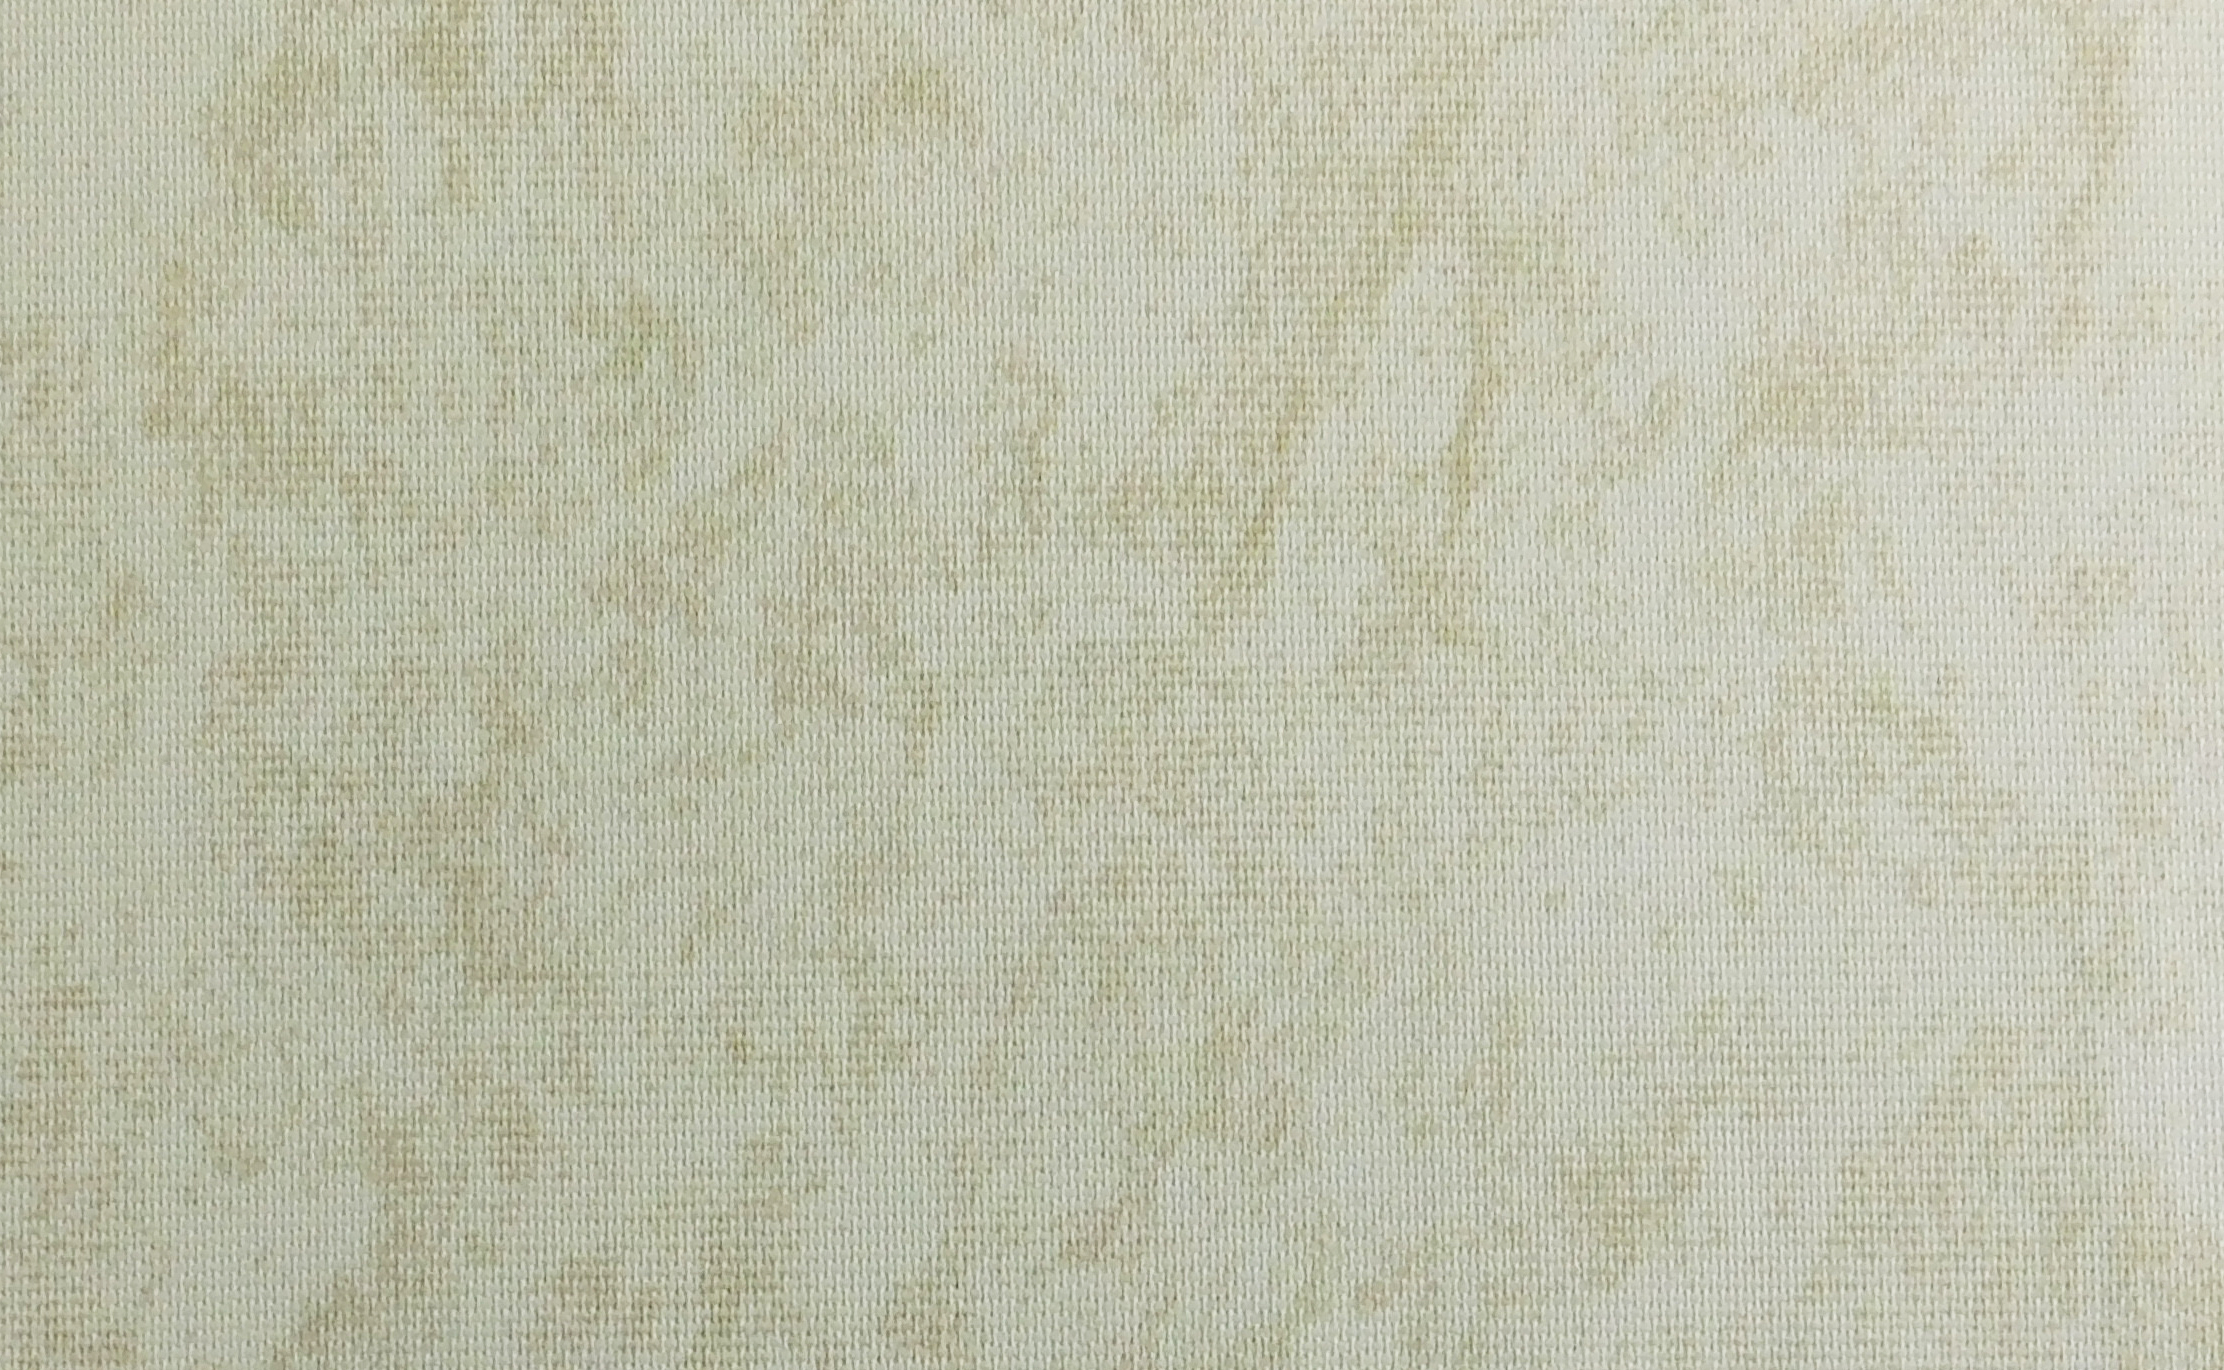 Caspian Cream Blind Sample Fabric